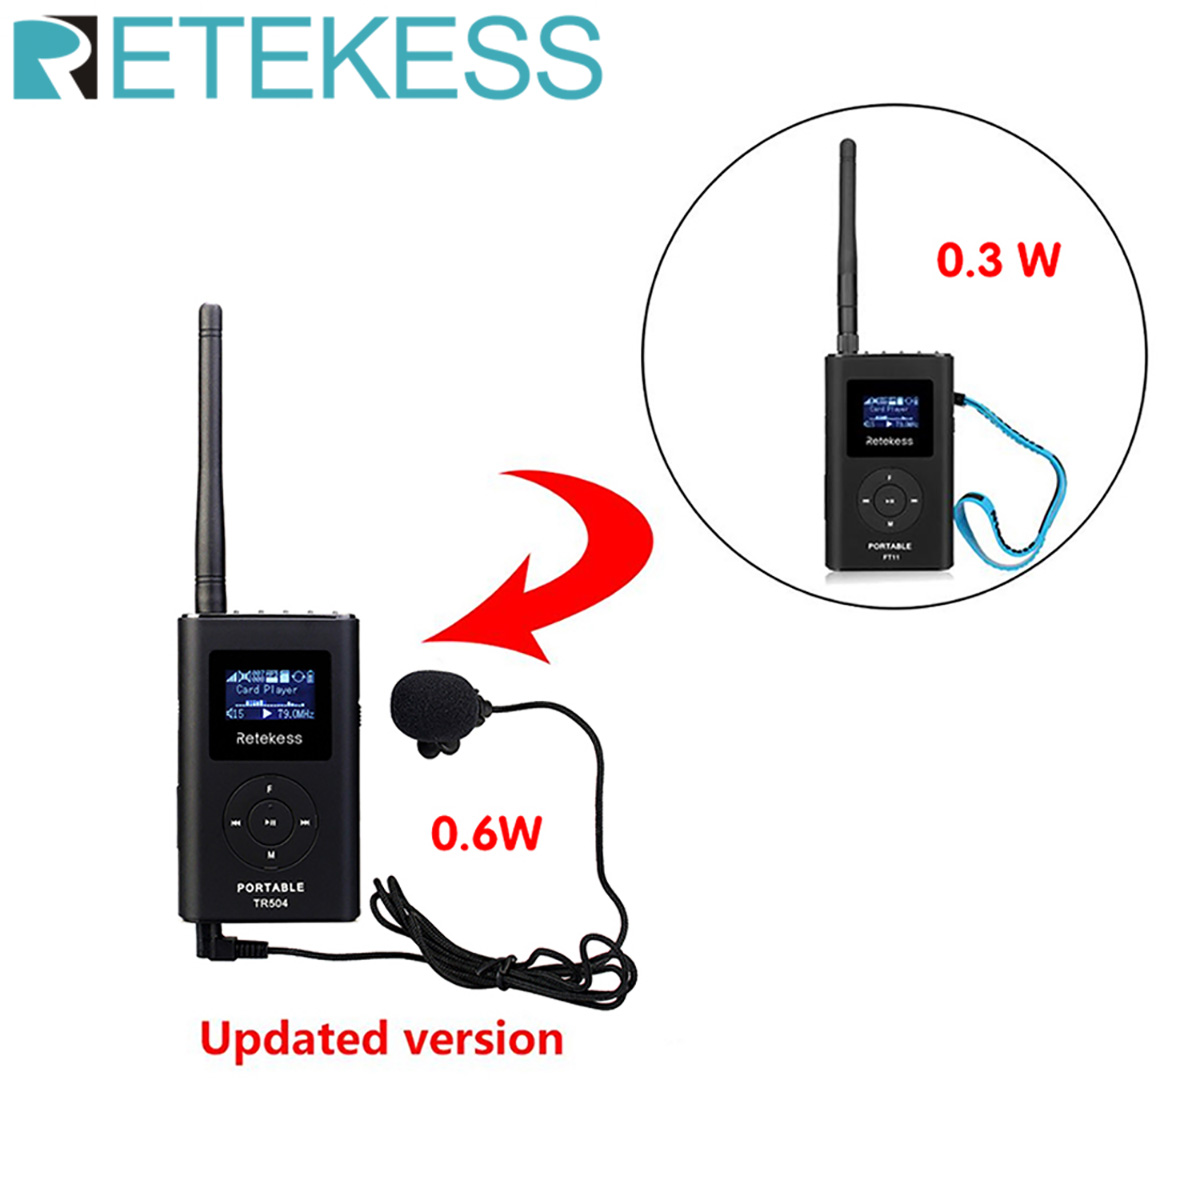 Retekess TR504 0.6W Wireless FM Broadcast Transmitter MP3 Portable for Church Car Meeting Support TF Card AUX Input